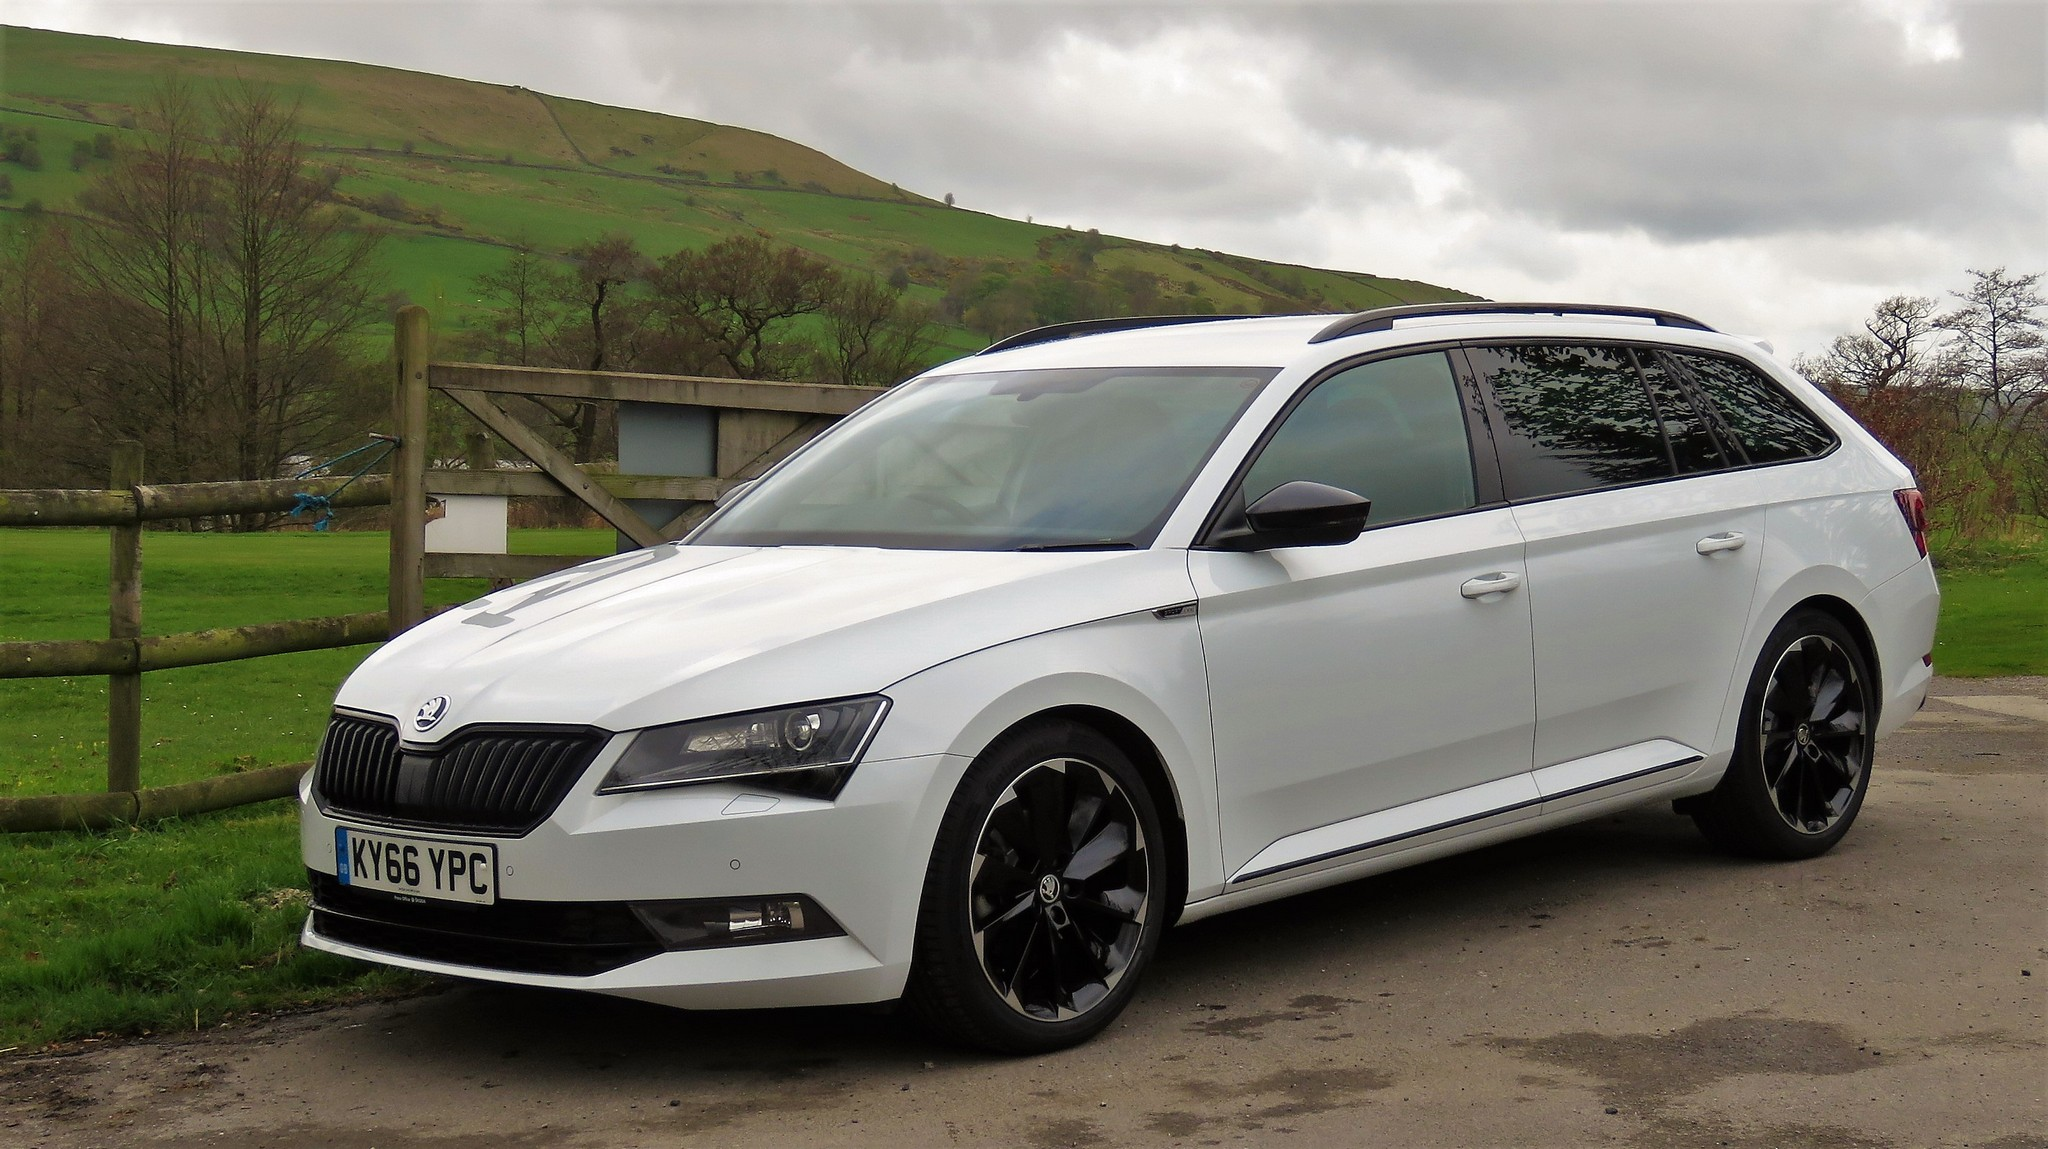 skoda superb estate sportline 4x4 dsg review. Black Bedroom Furniture Sets. Home Design Ideas